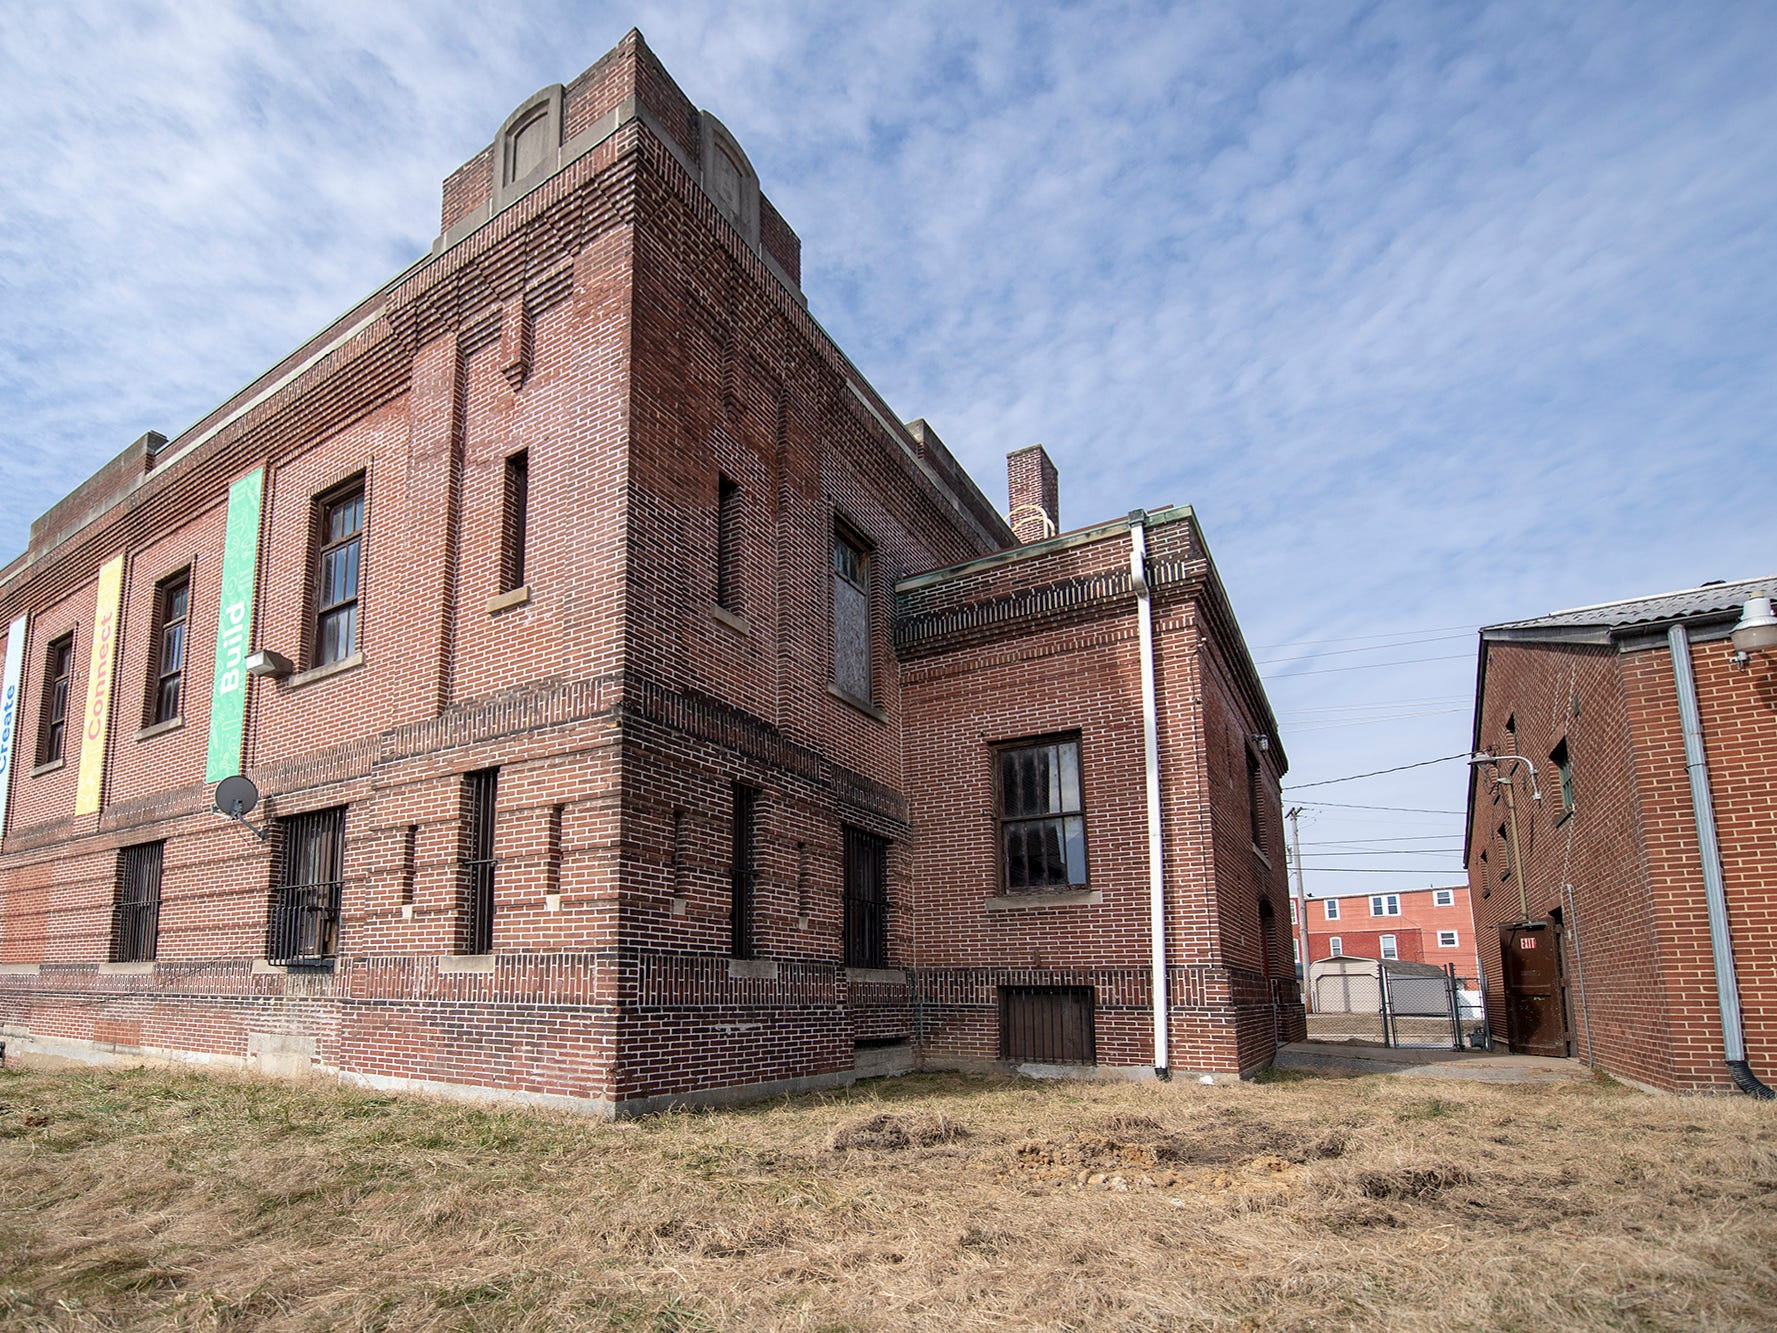 The buildings will be connected with a new entryway and there will be a patio overlooking the Codorus Creek. The York Armory, a brick fortress built in 1913 once used by the Pa. National Guard, will soon be transformed into Keystone Kidspace, an educational experience for families. It's expected to open in 2020.